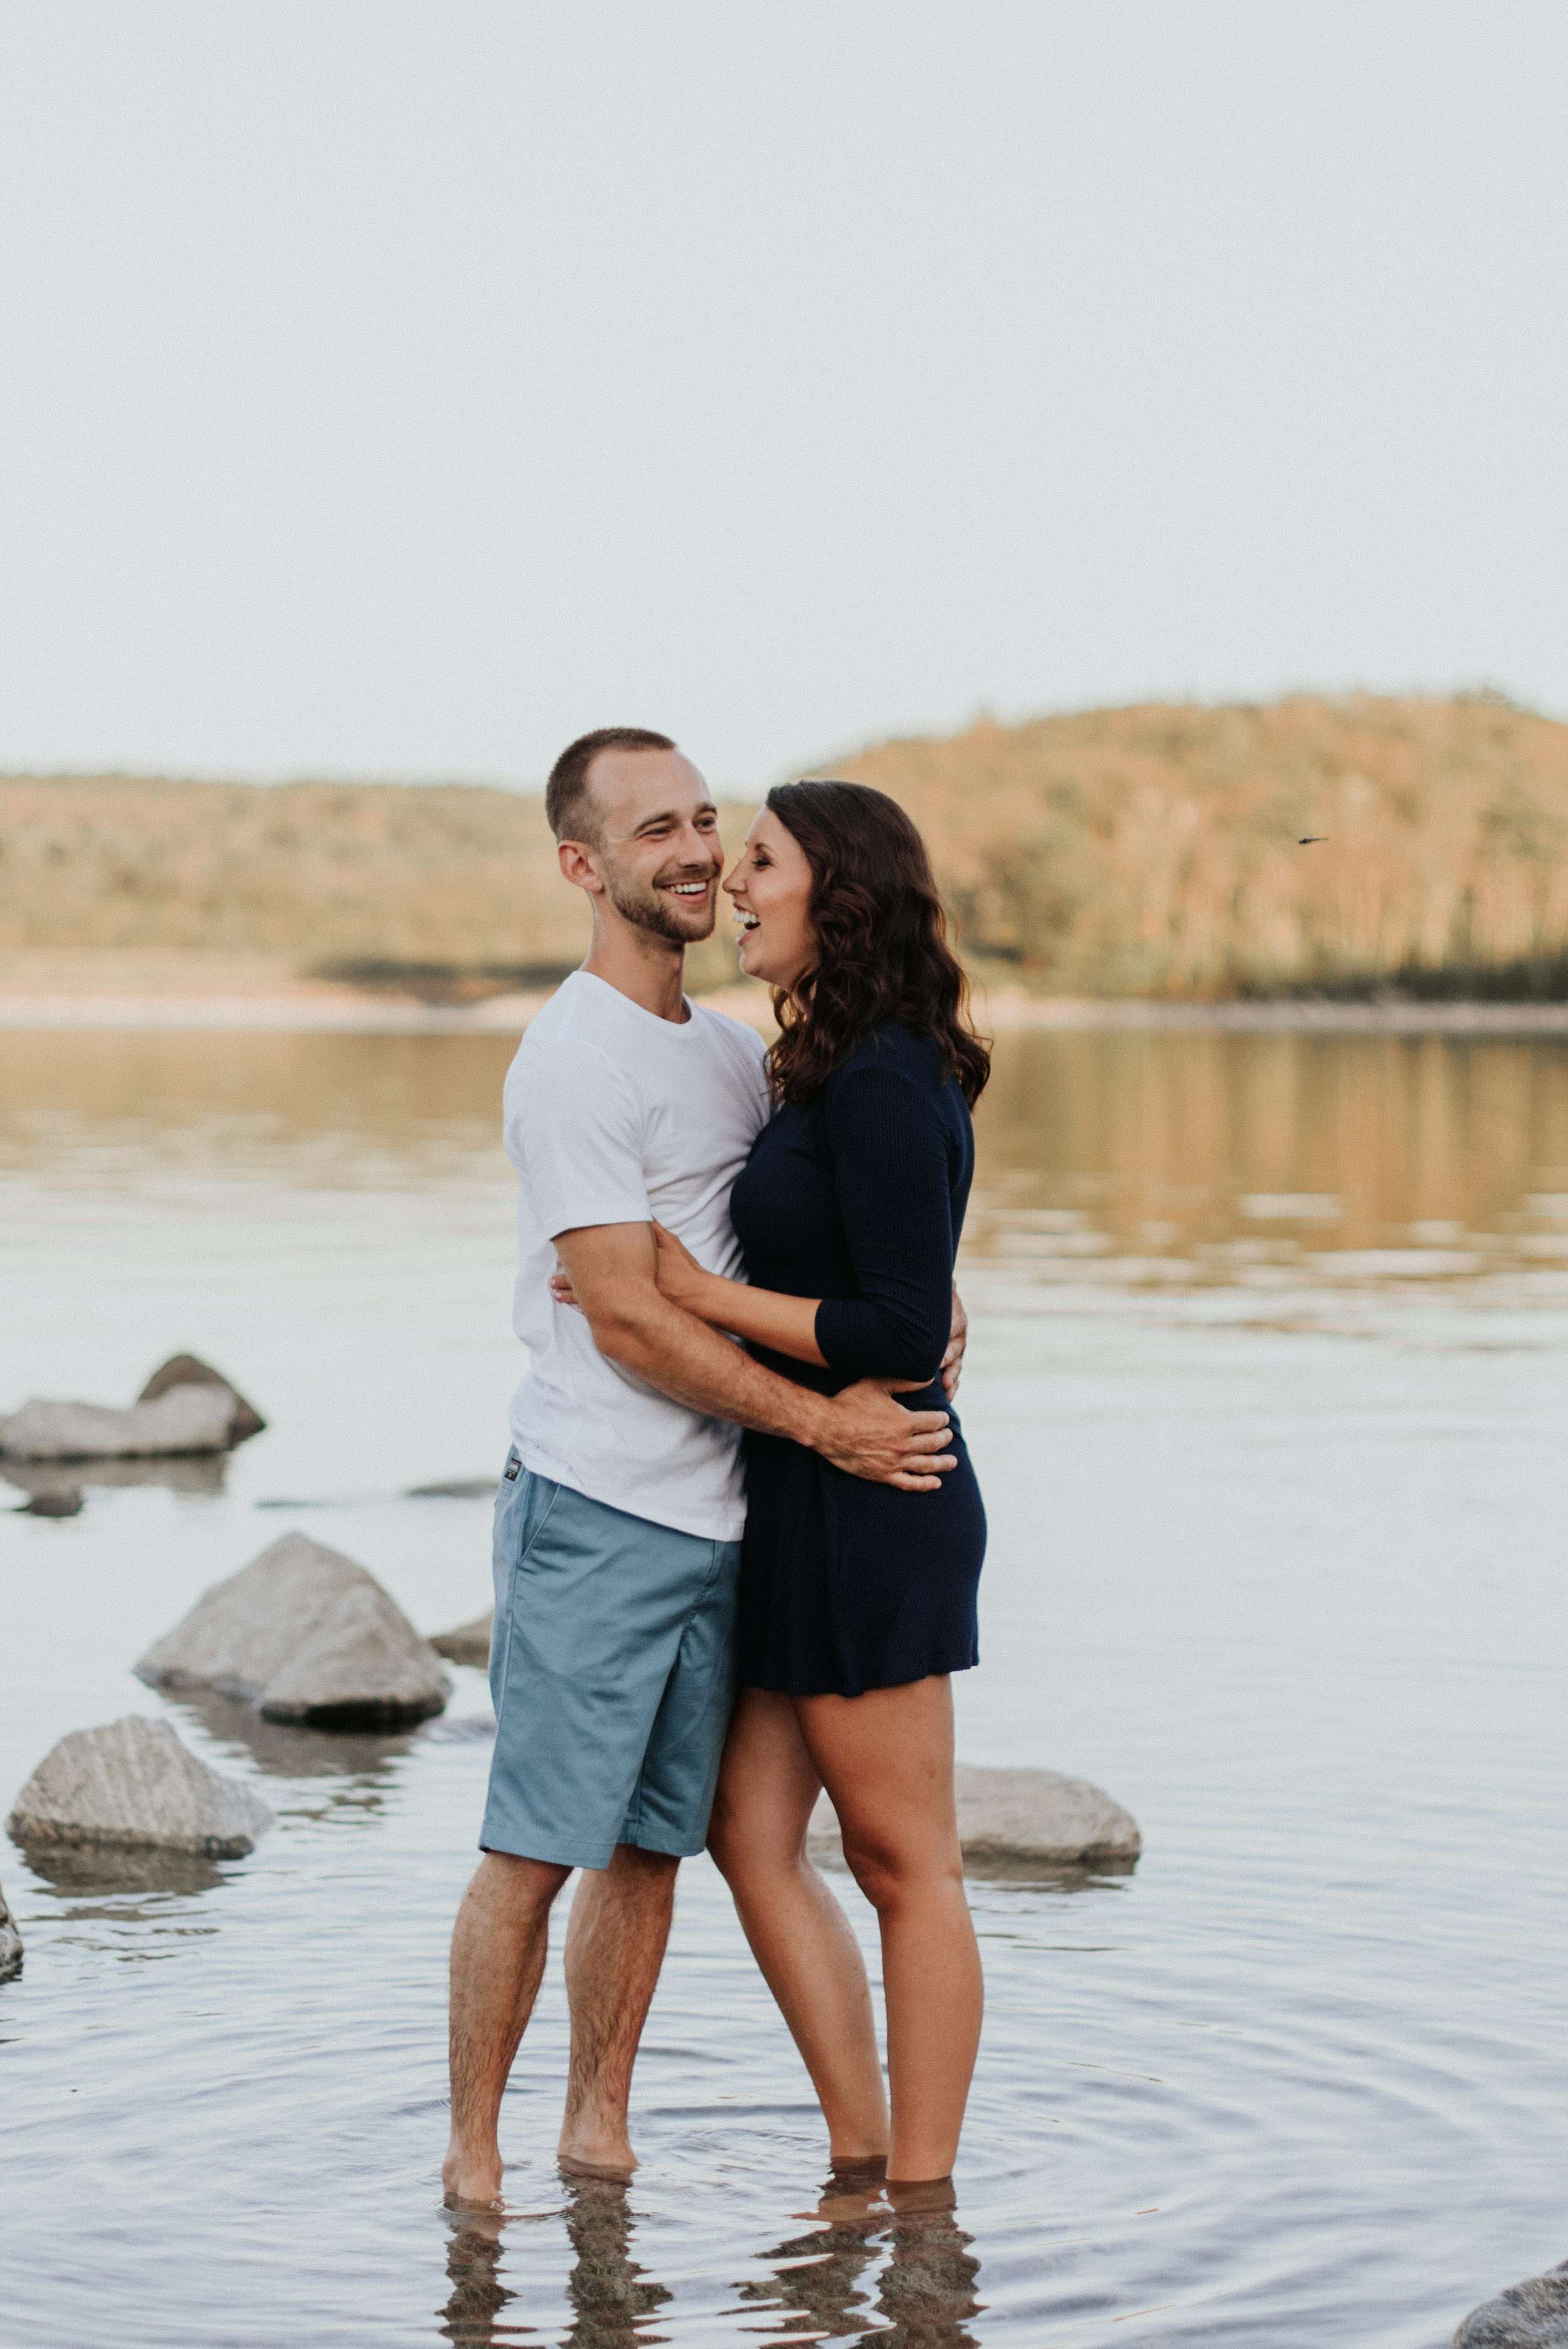 Amanda & Sean-Massachusetts-Forest Waterfront Engagement Session-Woodsy Outdoor Couples Session-Photographer-267.jpg